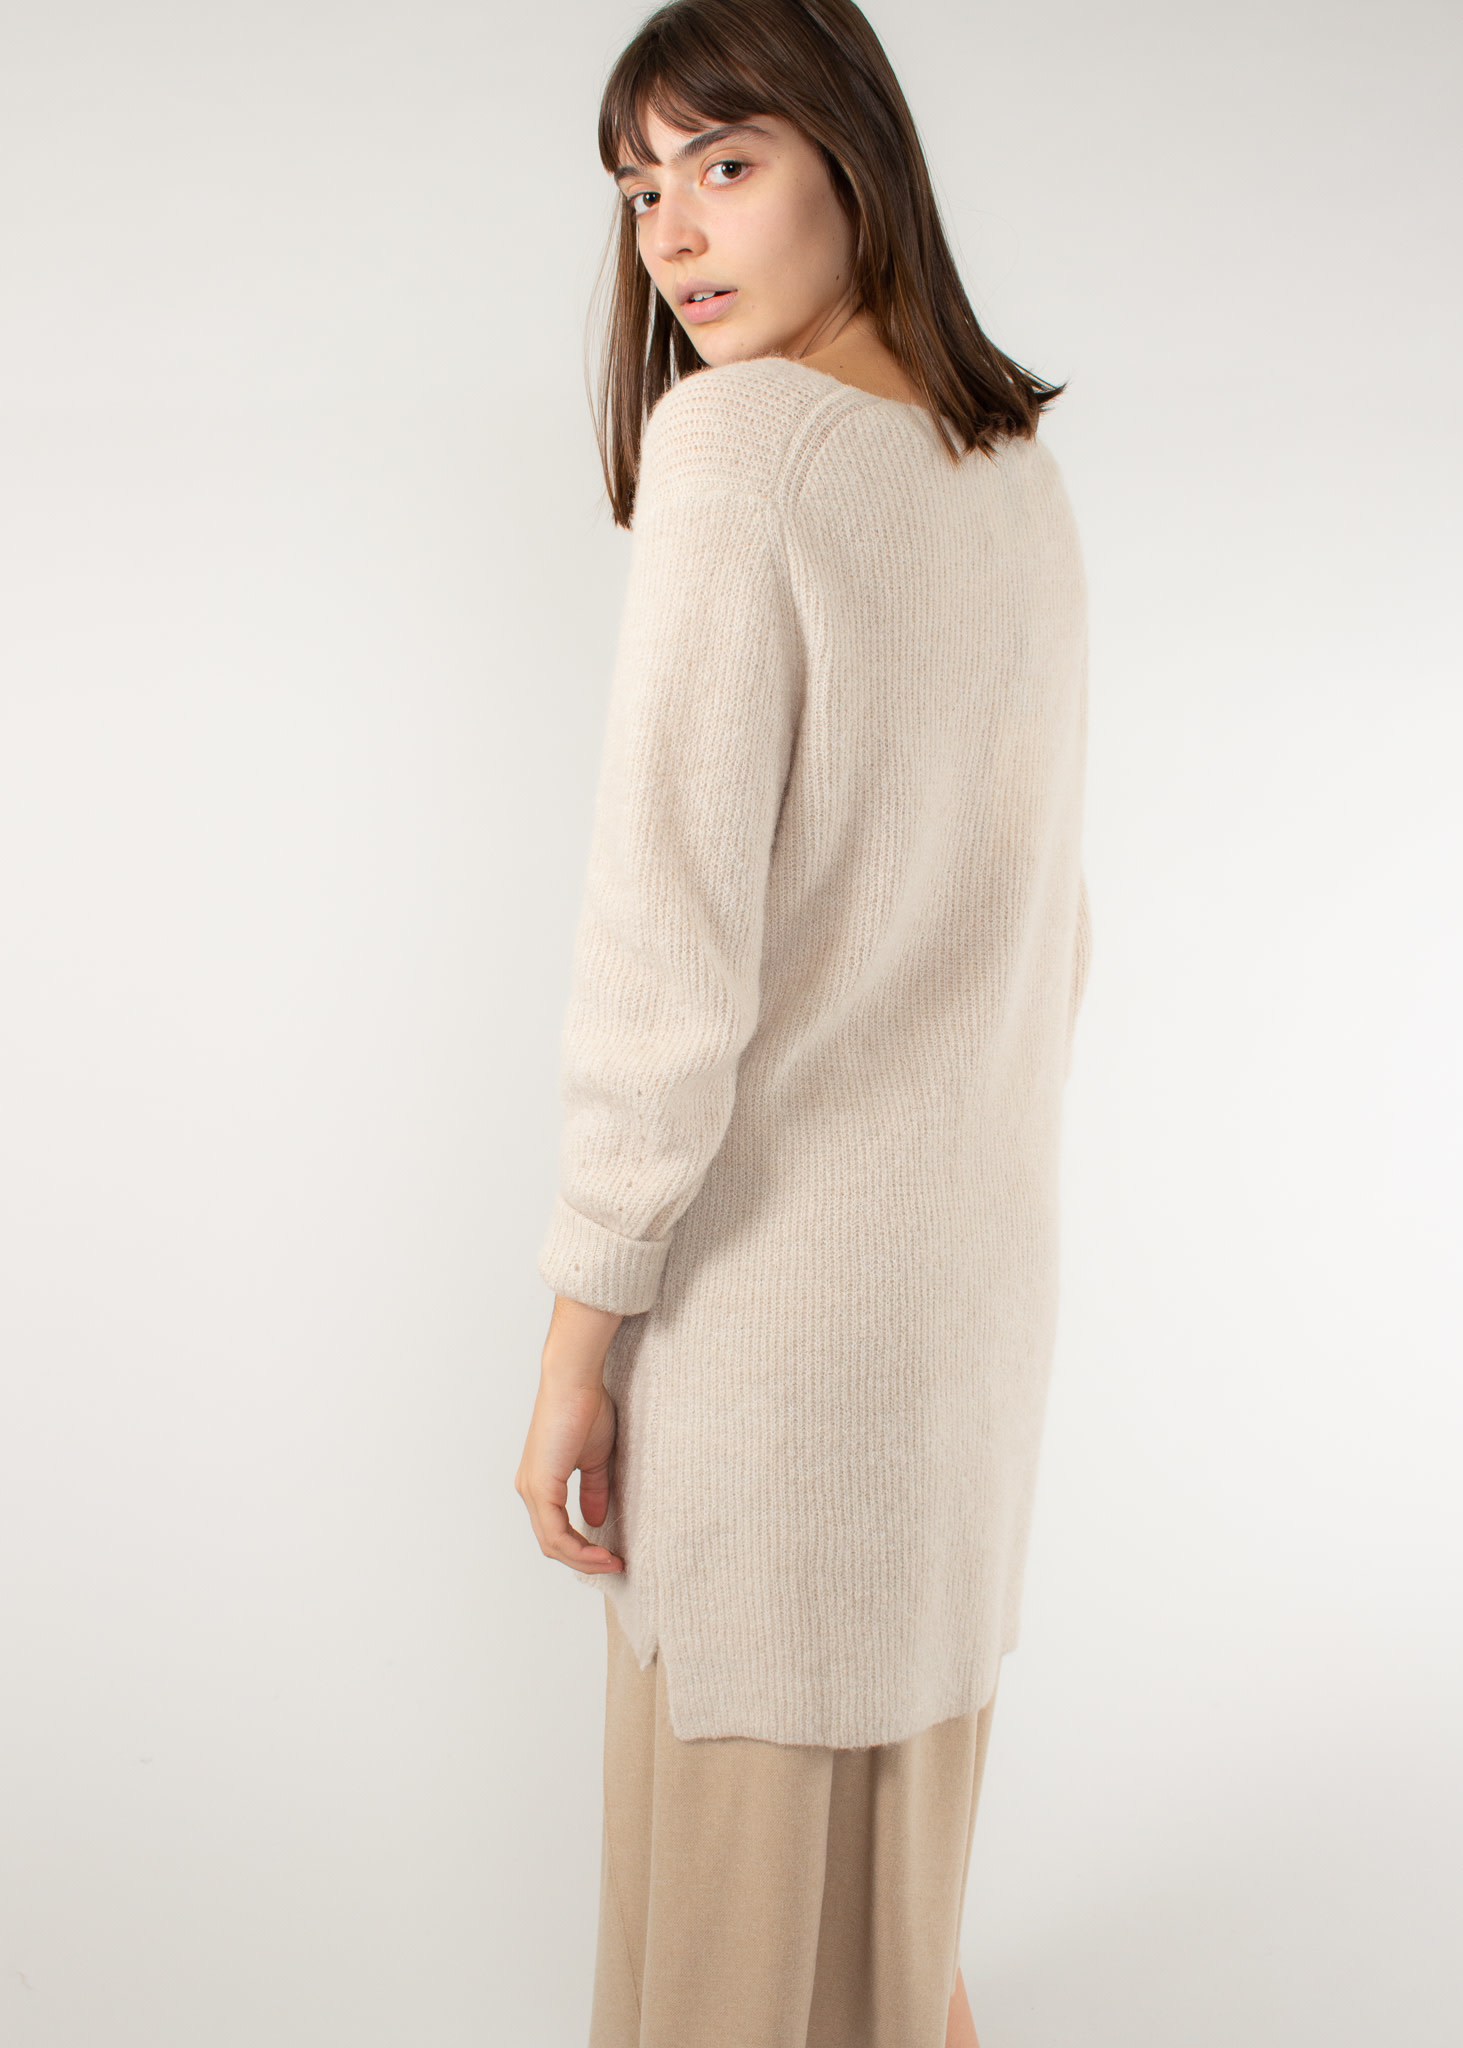 YAYA Clean knit vneck sweater